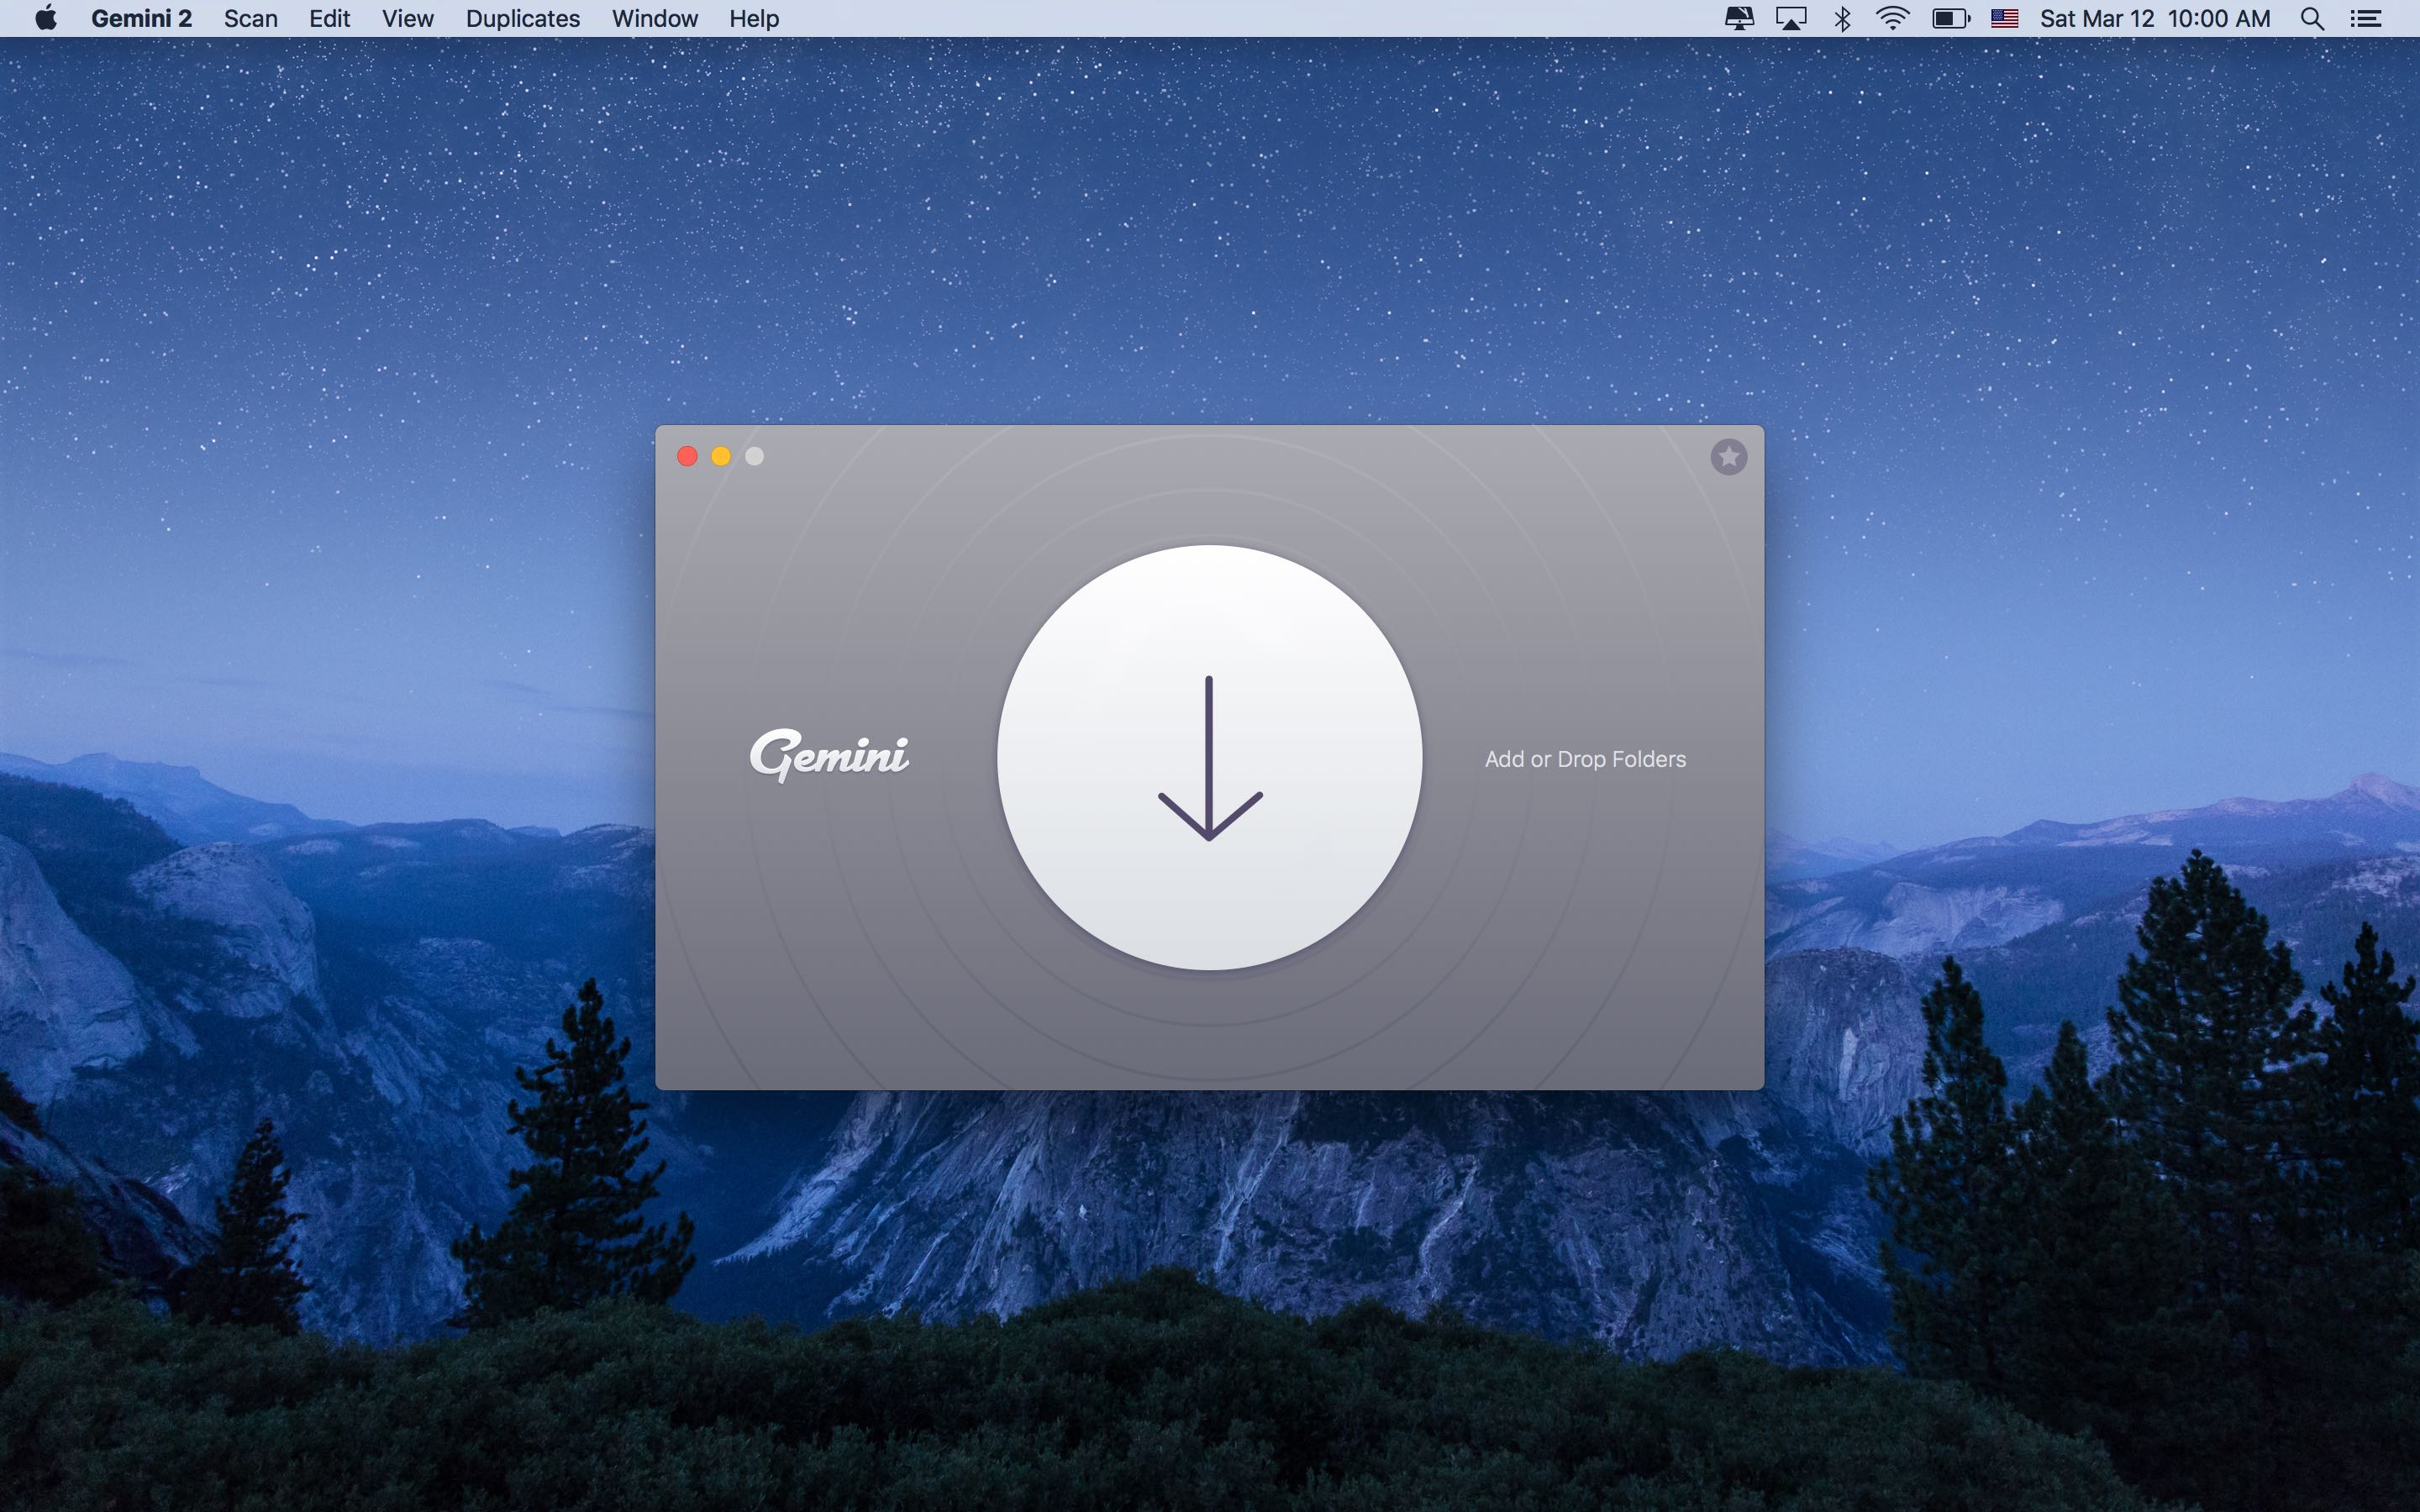 Gemini 2.0 for OS X launch screen Mac screenshot 004